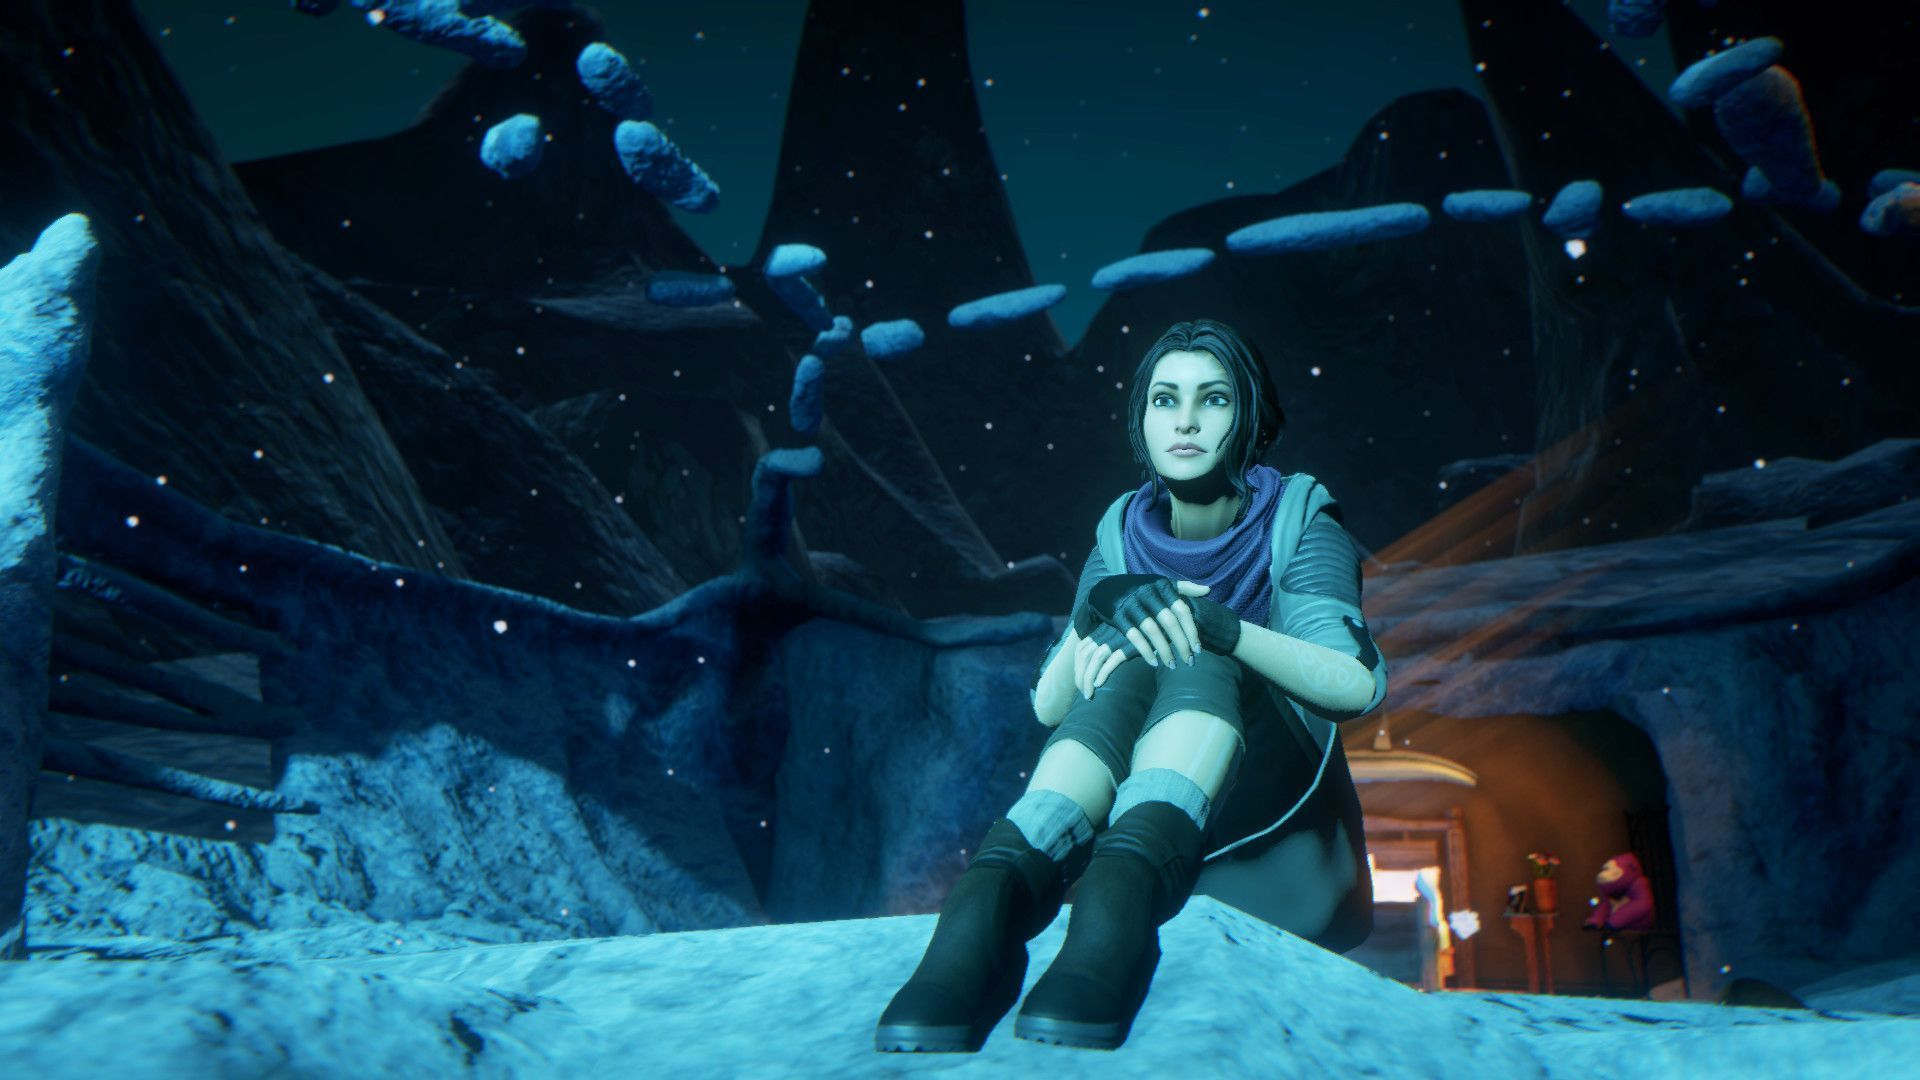 Dreamfall Chapters Book 2 Patch